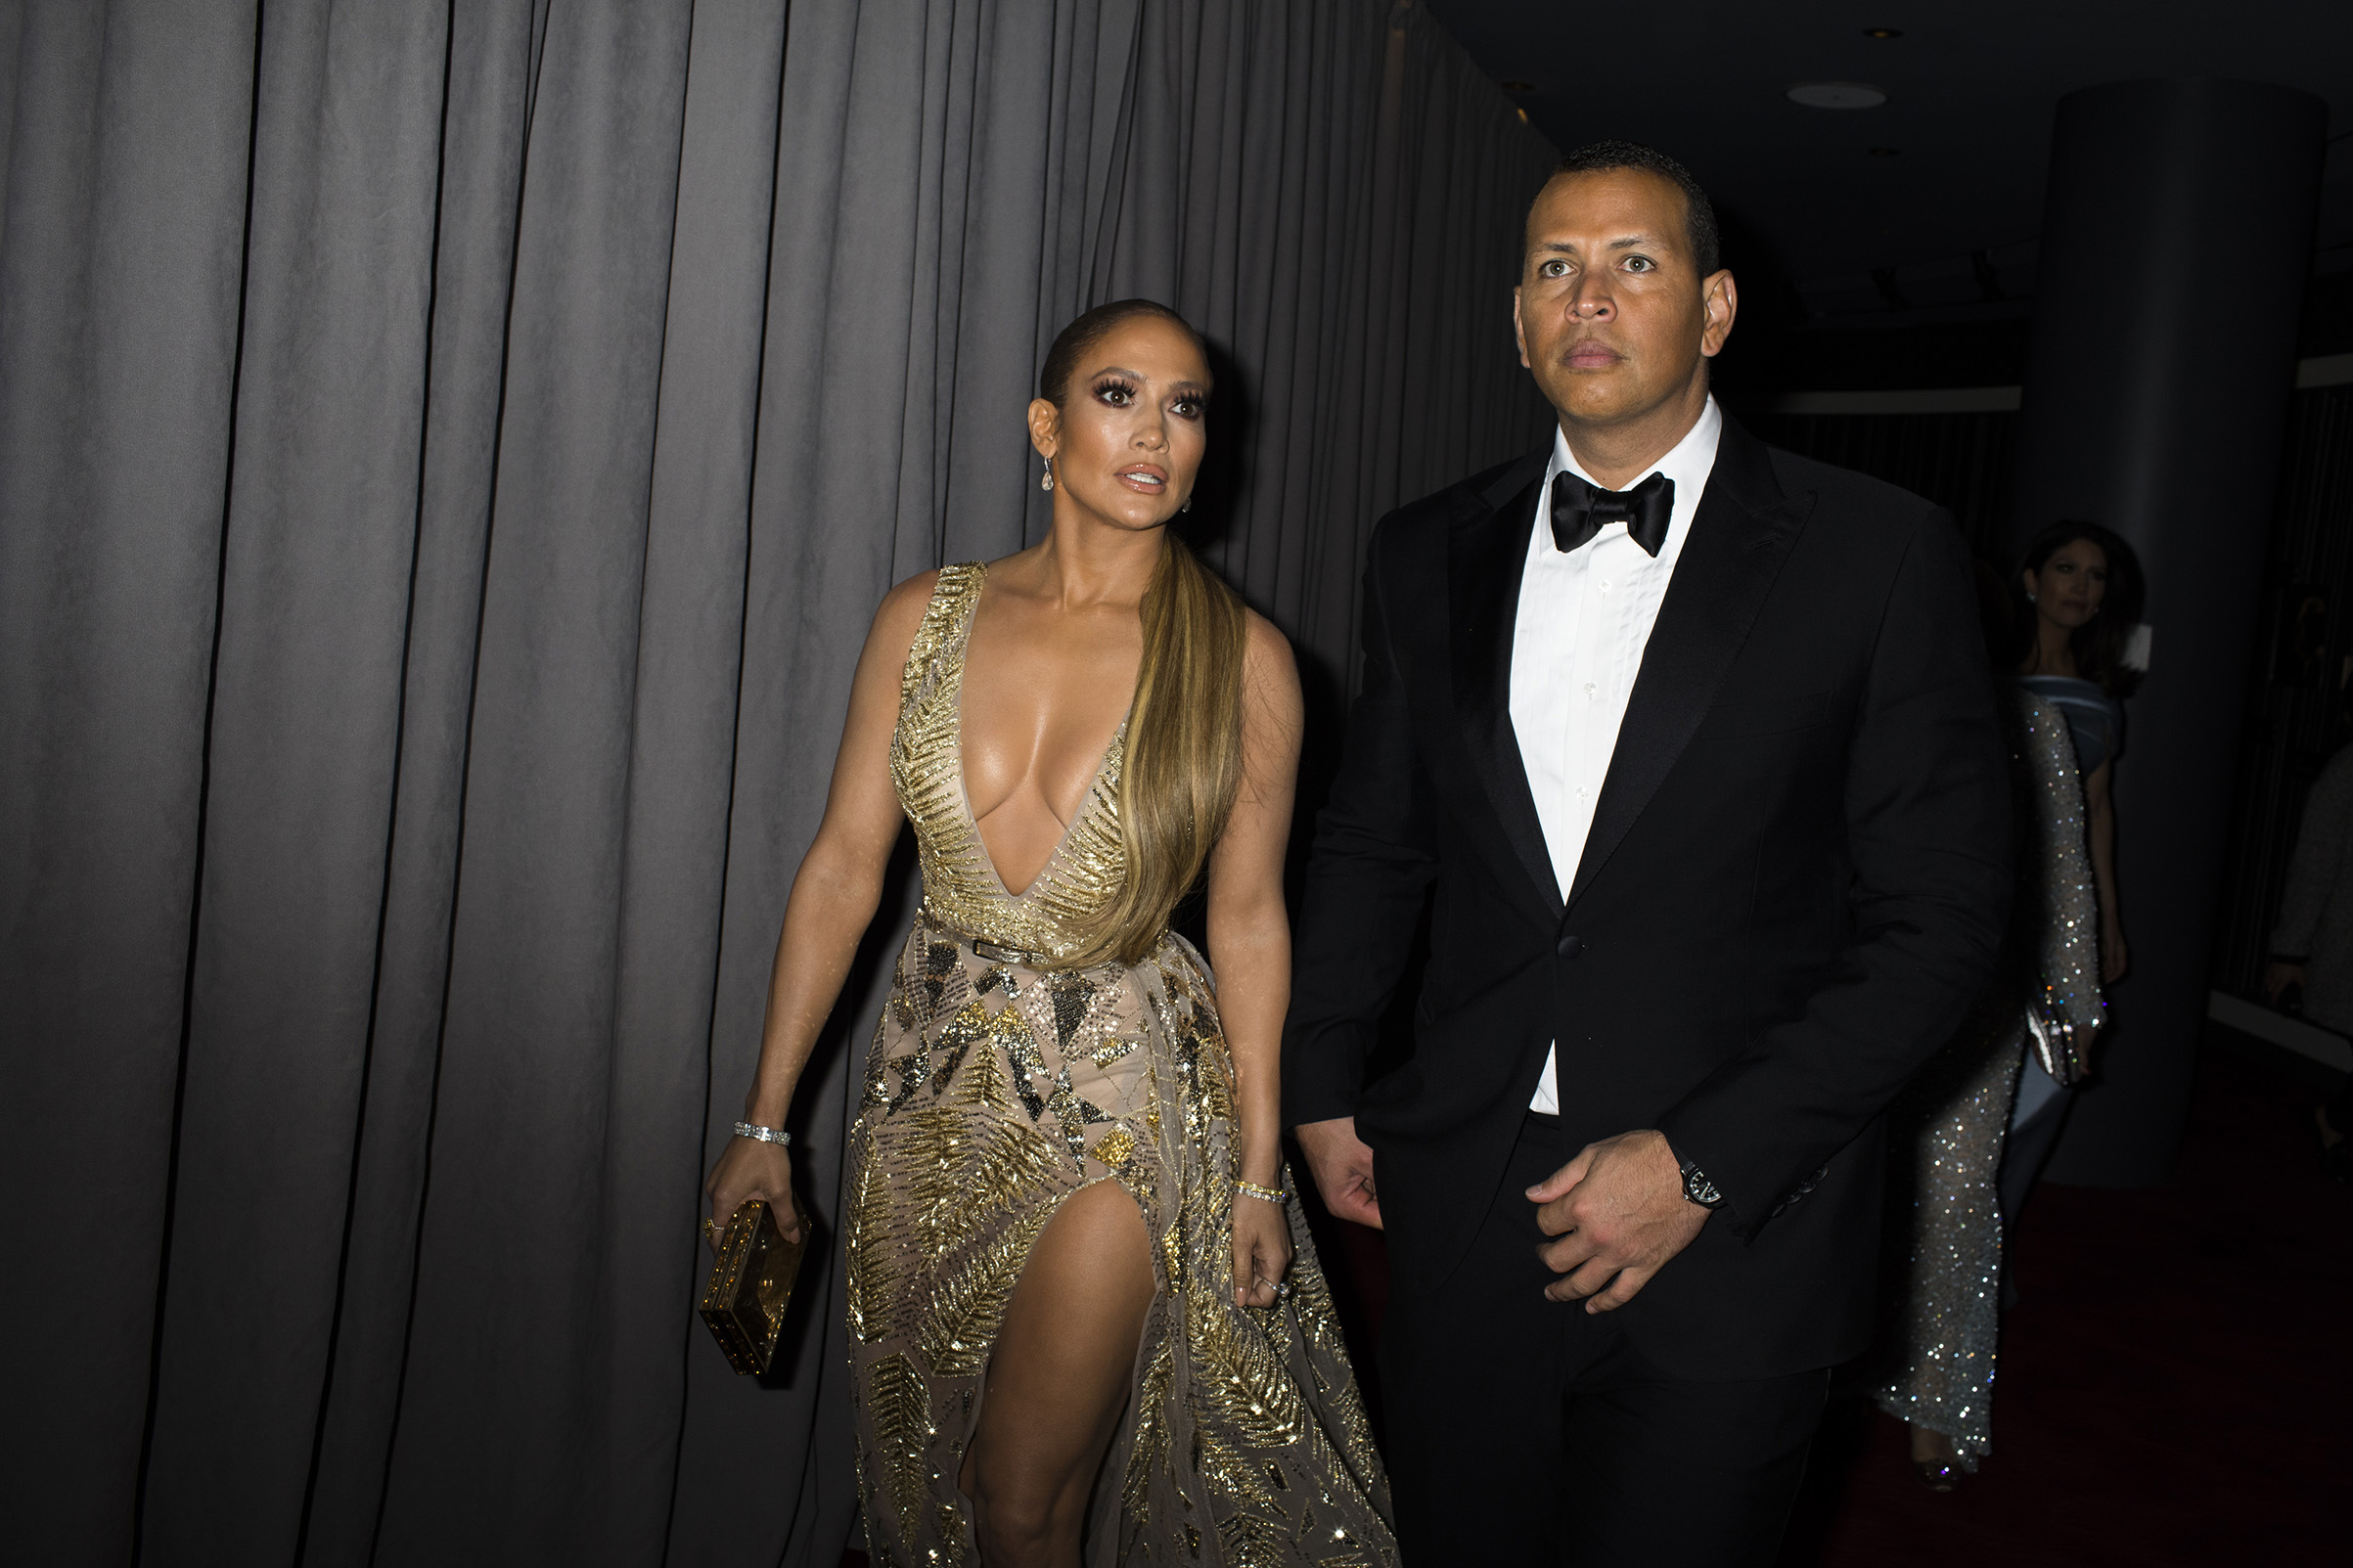 Jennifer Lopez and Alex Rodriguez at the Time 100 Gala at Jazz at Lincoln Center on April 24, 2018 in New York City.